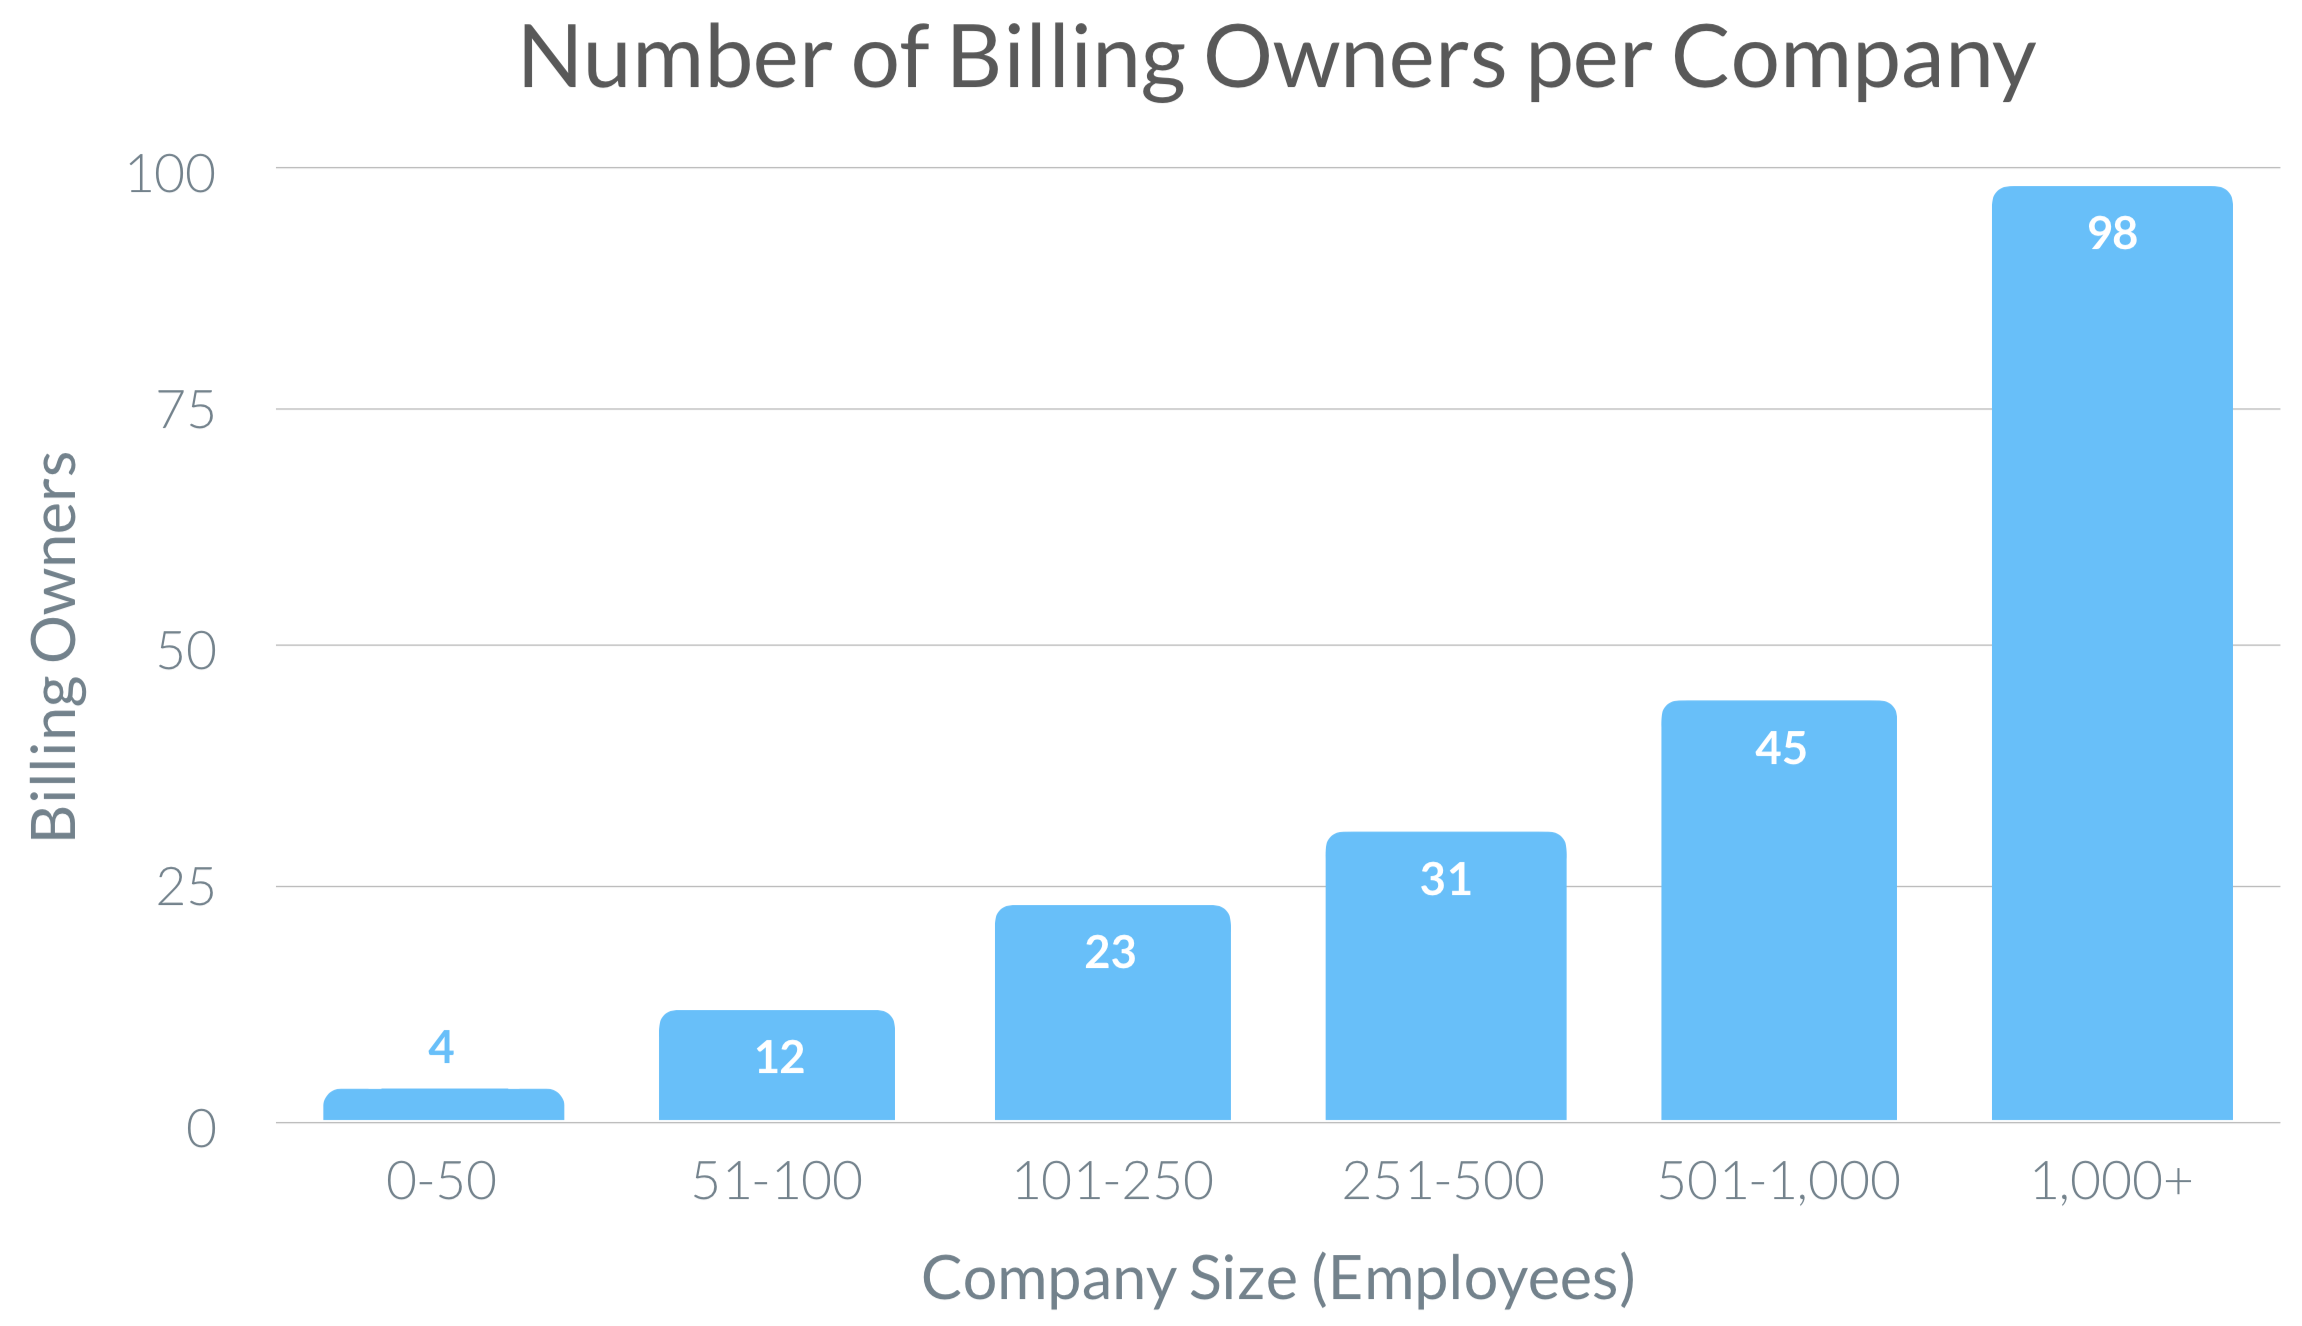 Number of Billing Owners per Company